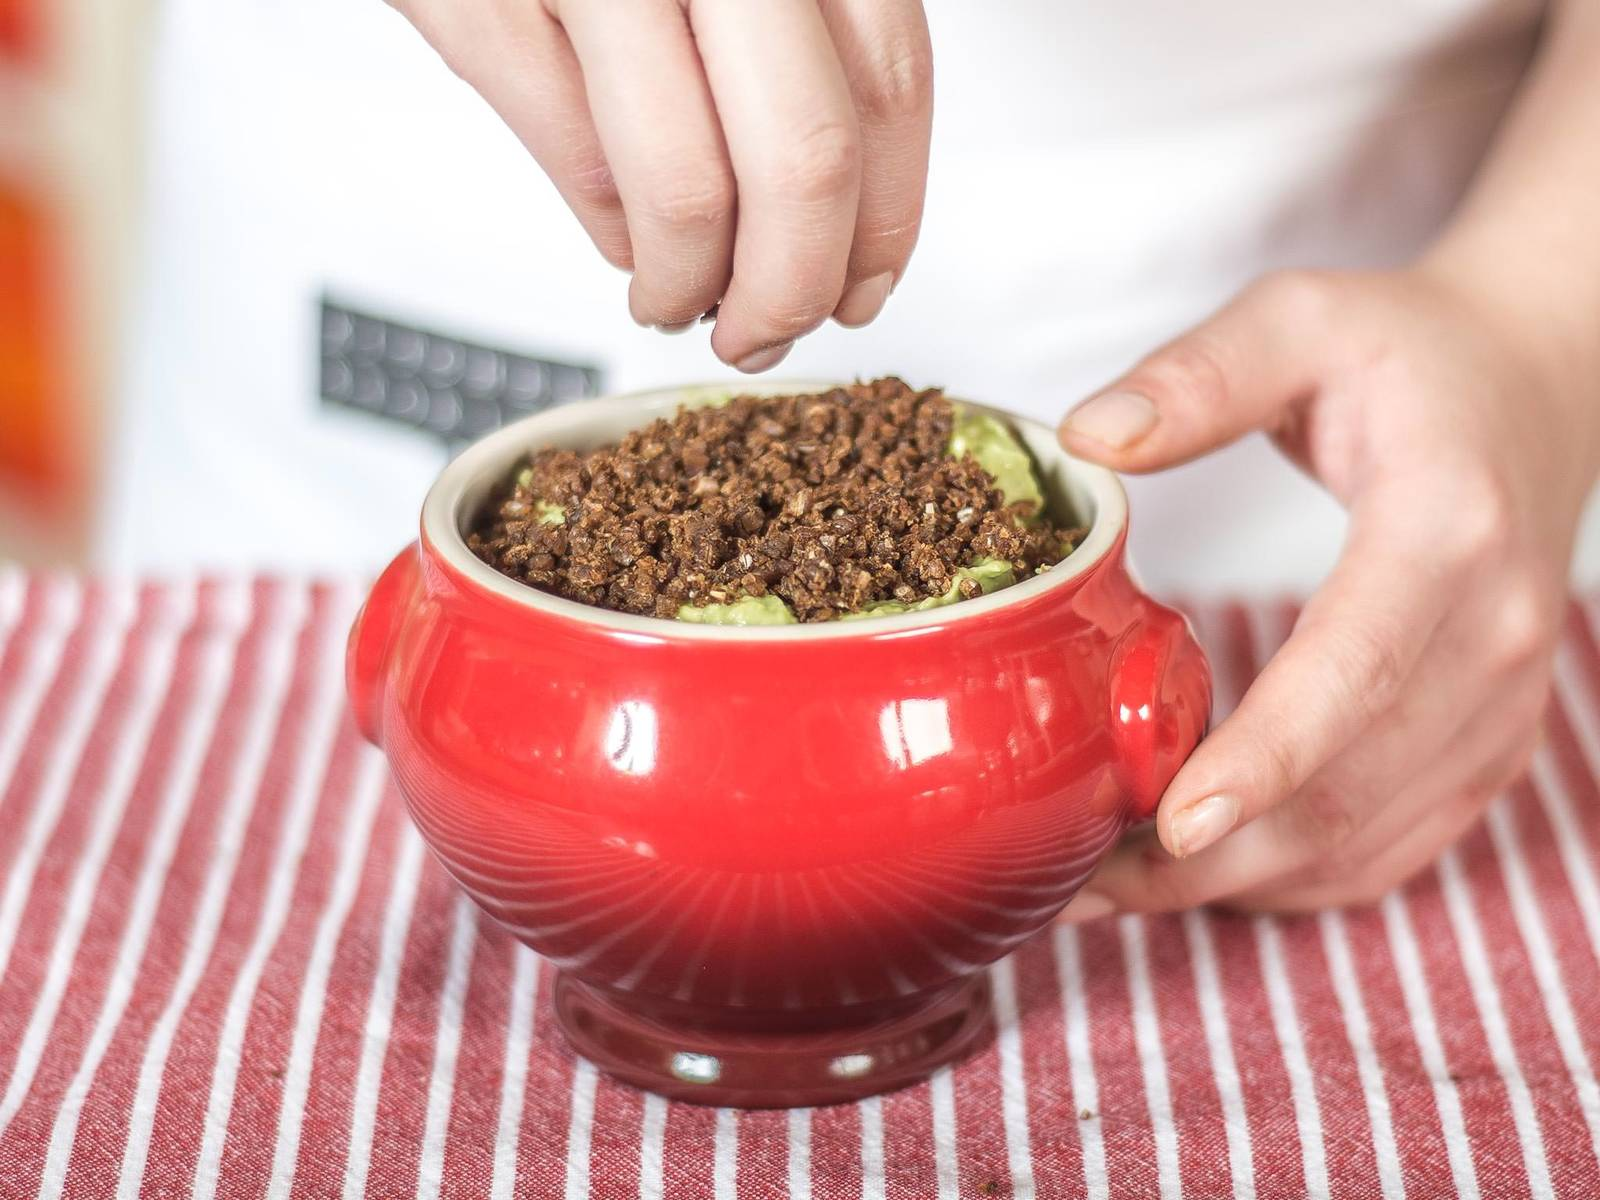 Top with a layer of dried pumpernickel. To serve, cut the vegetables into strips as desired and stick into the tumblers.